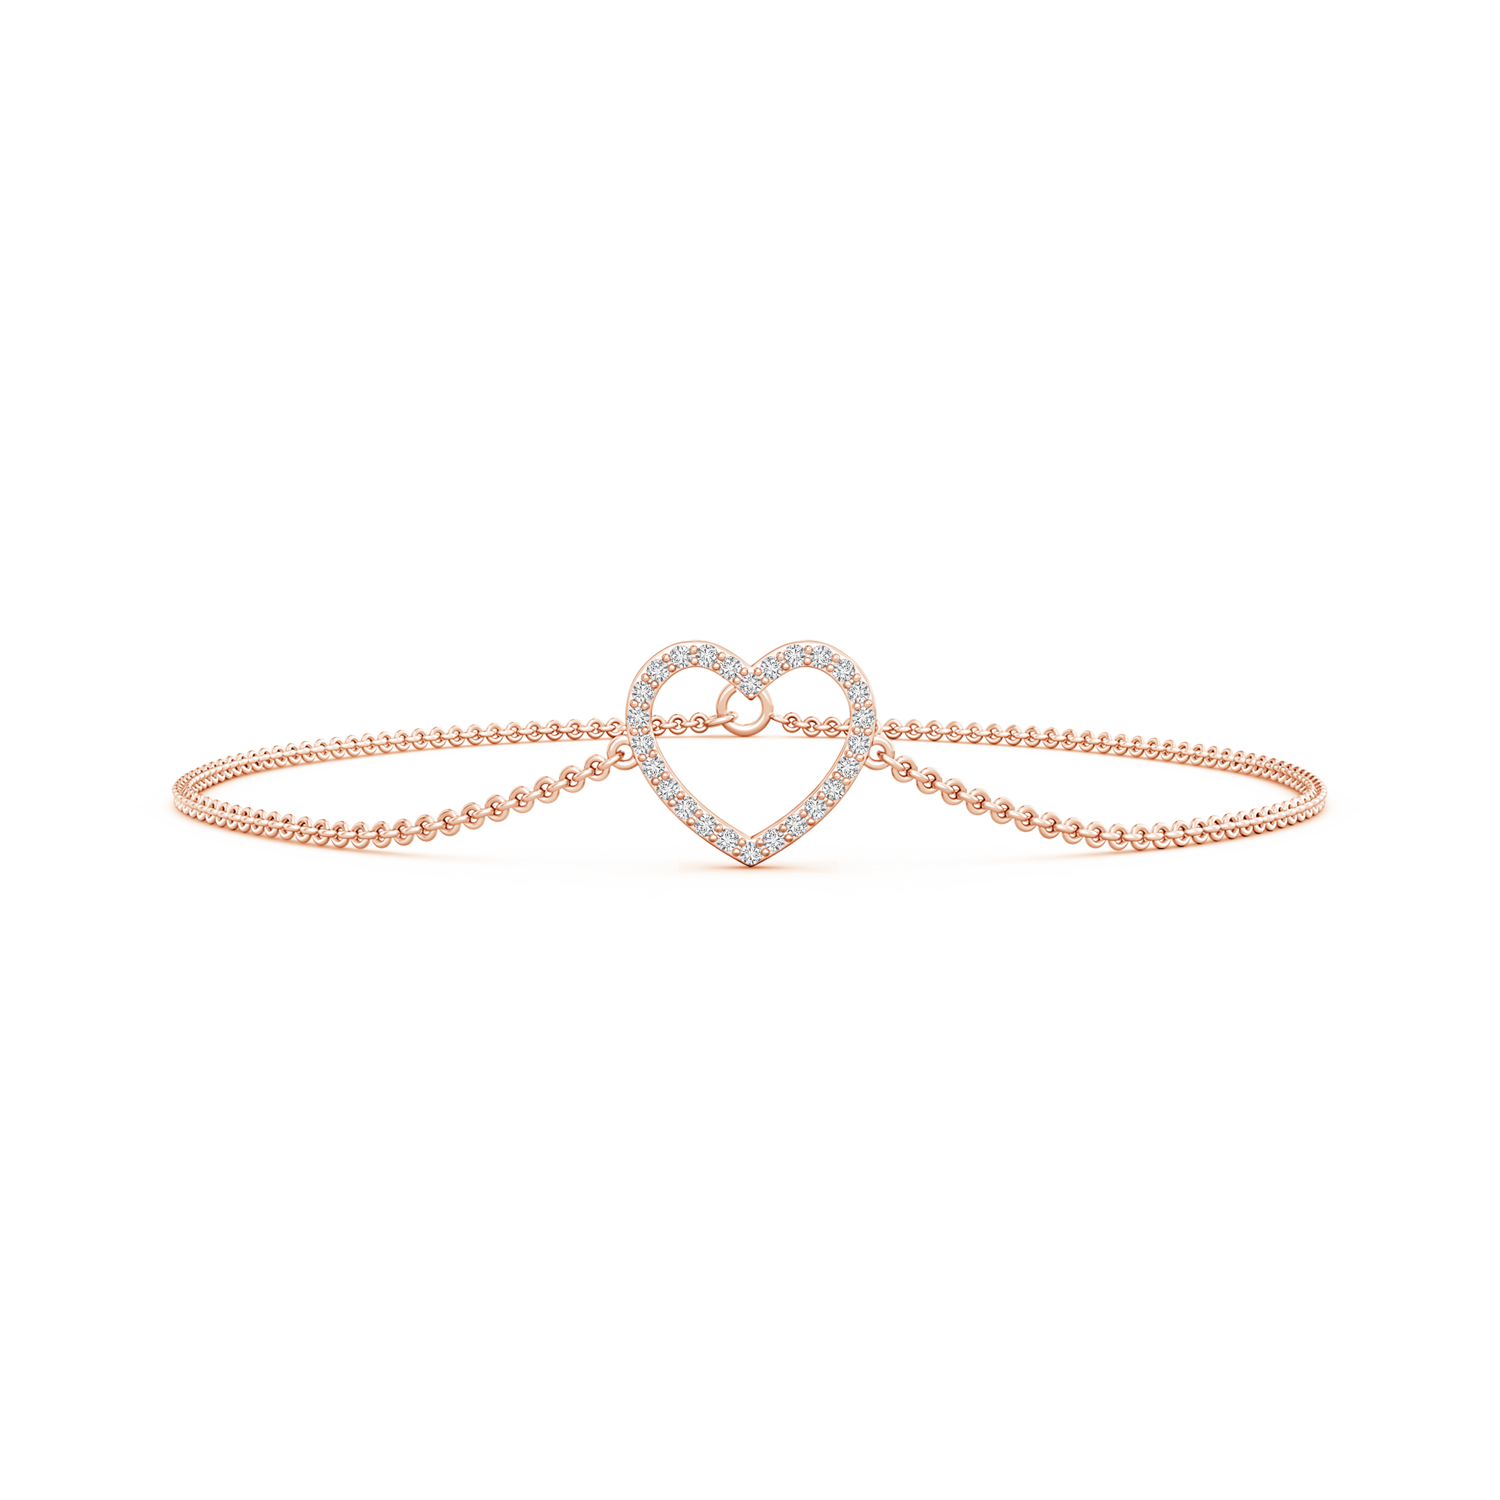 Lab Grown Diamond Studded Open Heart Link Bracelet - Main Image